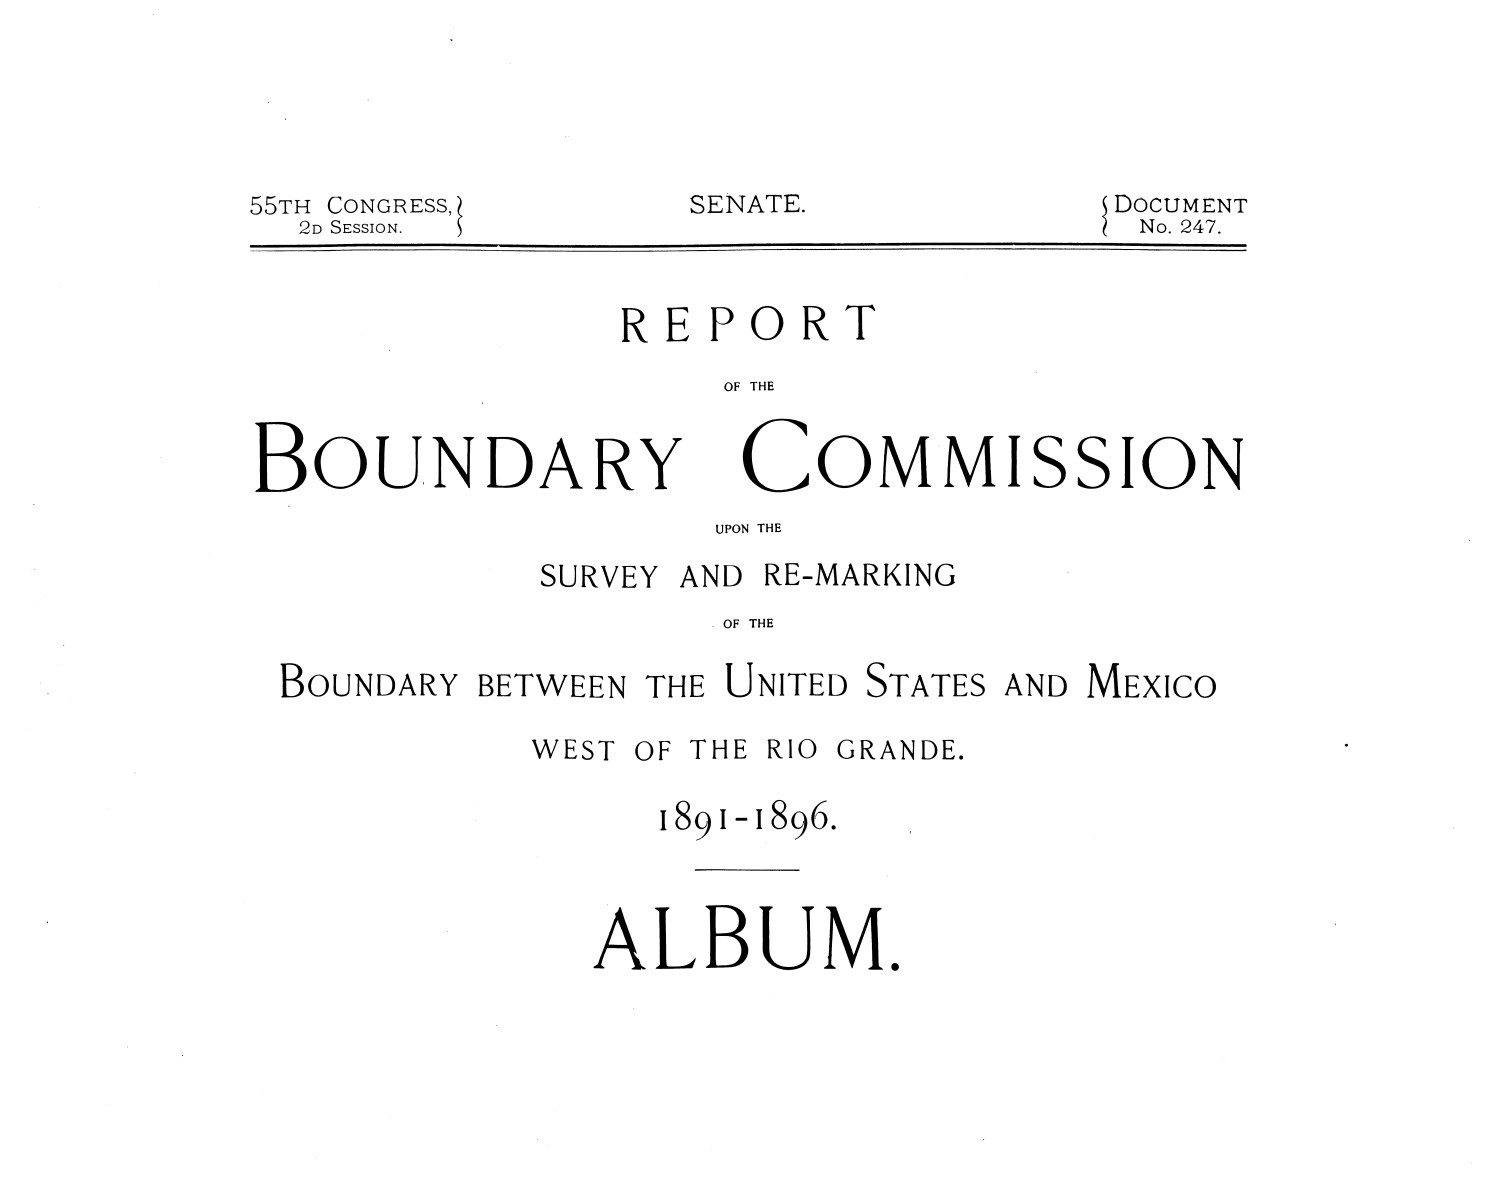 Report of the Boundary Commission upon the survey and re-marking of the boundary between the United States and Mexico west of the Rio Grande, 1891-1896, album                                                                                                      [Sequence #]: 1 of 260